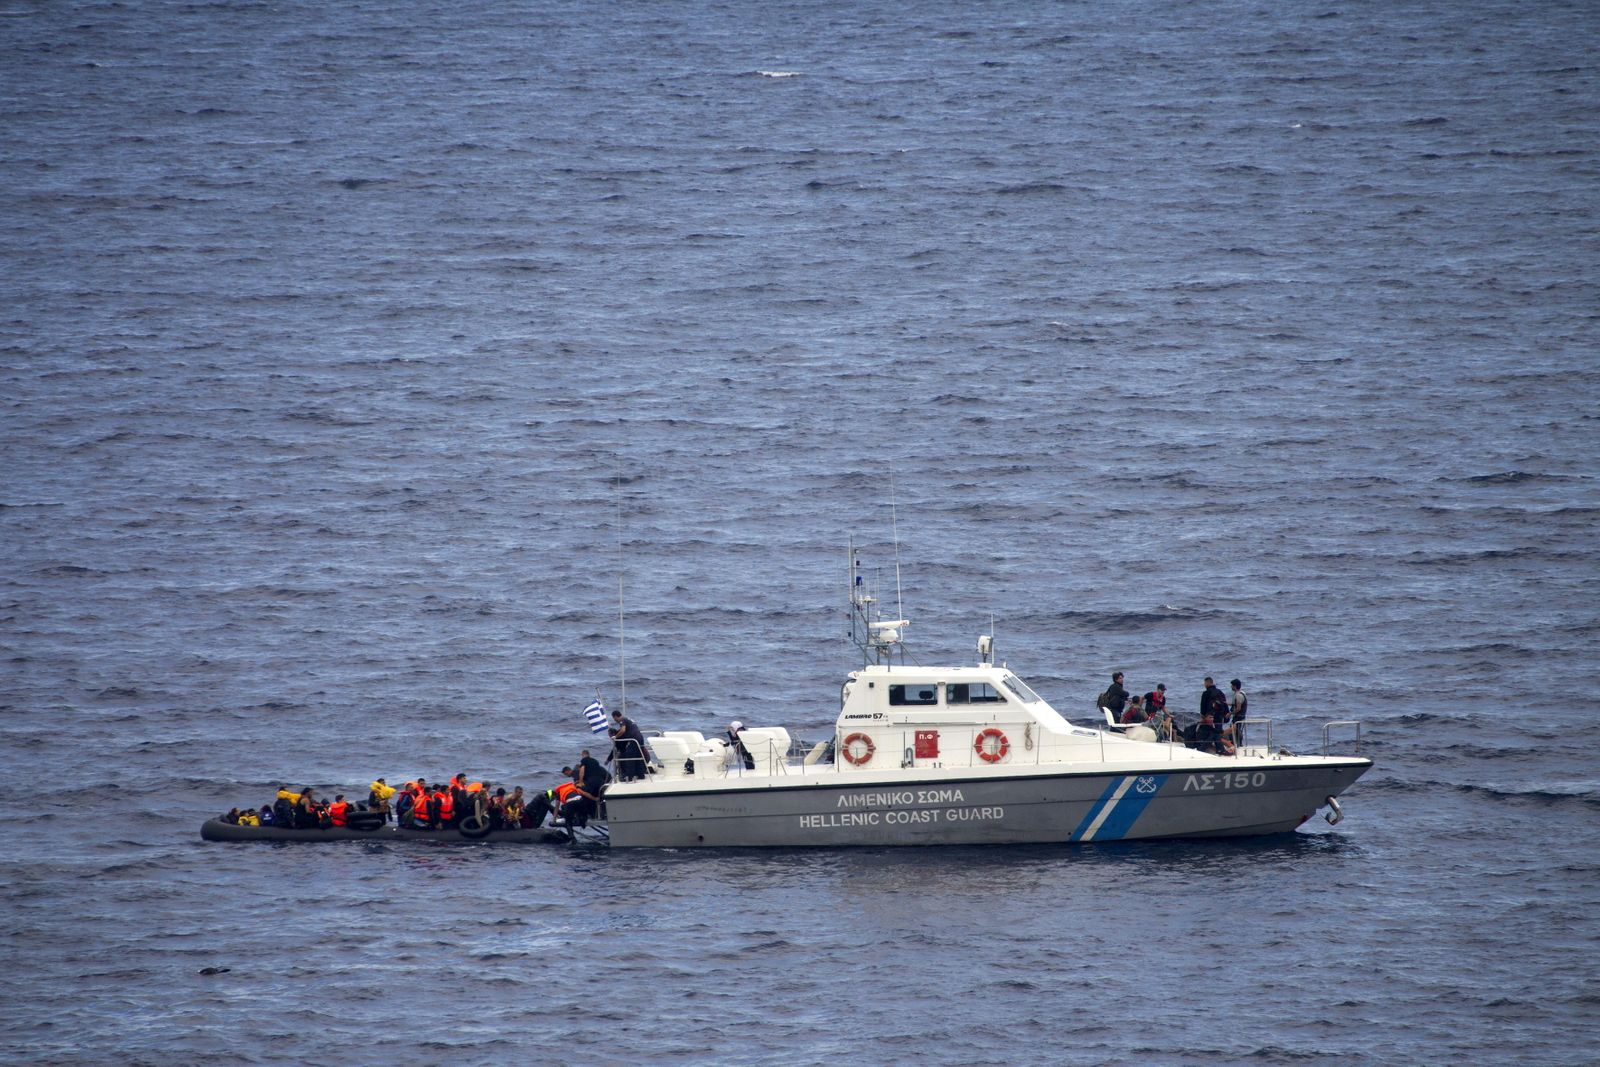 A Greek coast guard vessel approached an overcrowded dinghy carrying refugees and migrants during their effort to reach the Greek island of Lesbos by crossing a part of the Aegean Sea from the Turkish coast